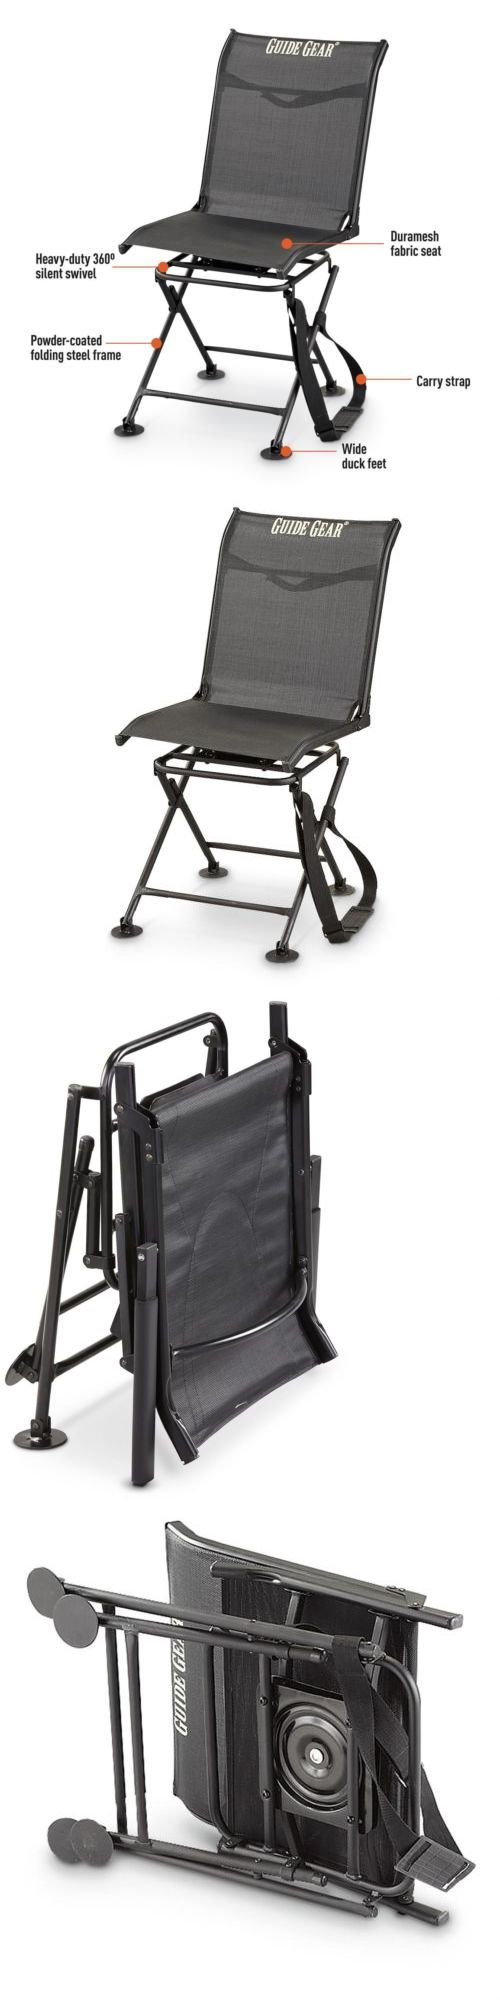 Bow hunting chair - Seats And Chairs 52507 360 Degree Swivel Hunting Blind Chair Folding Silent Heavy Duty Deer